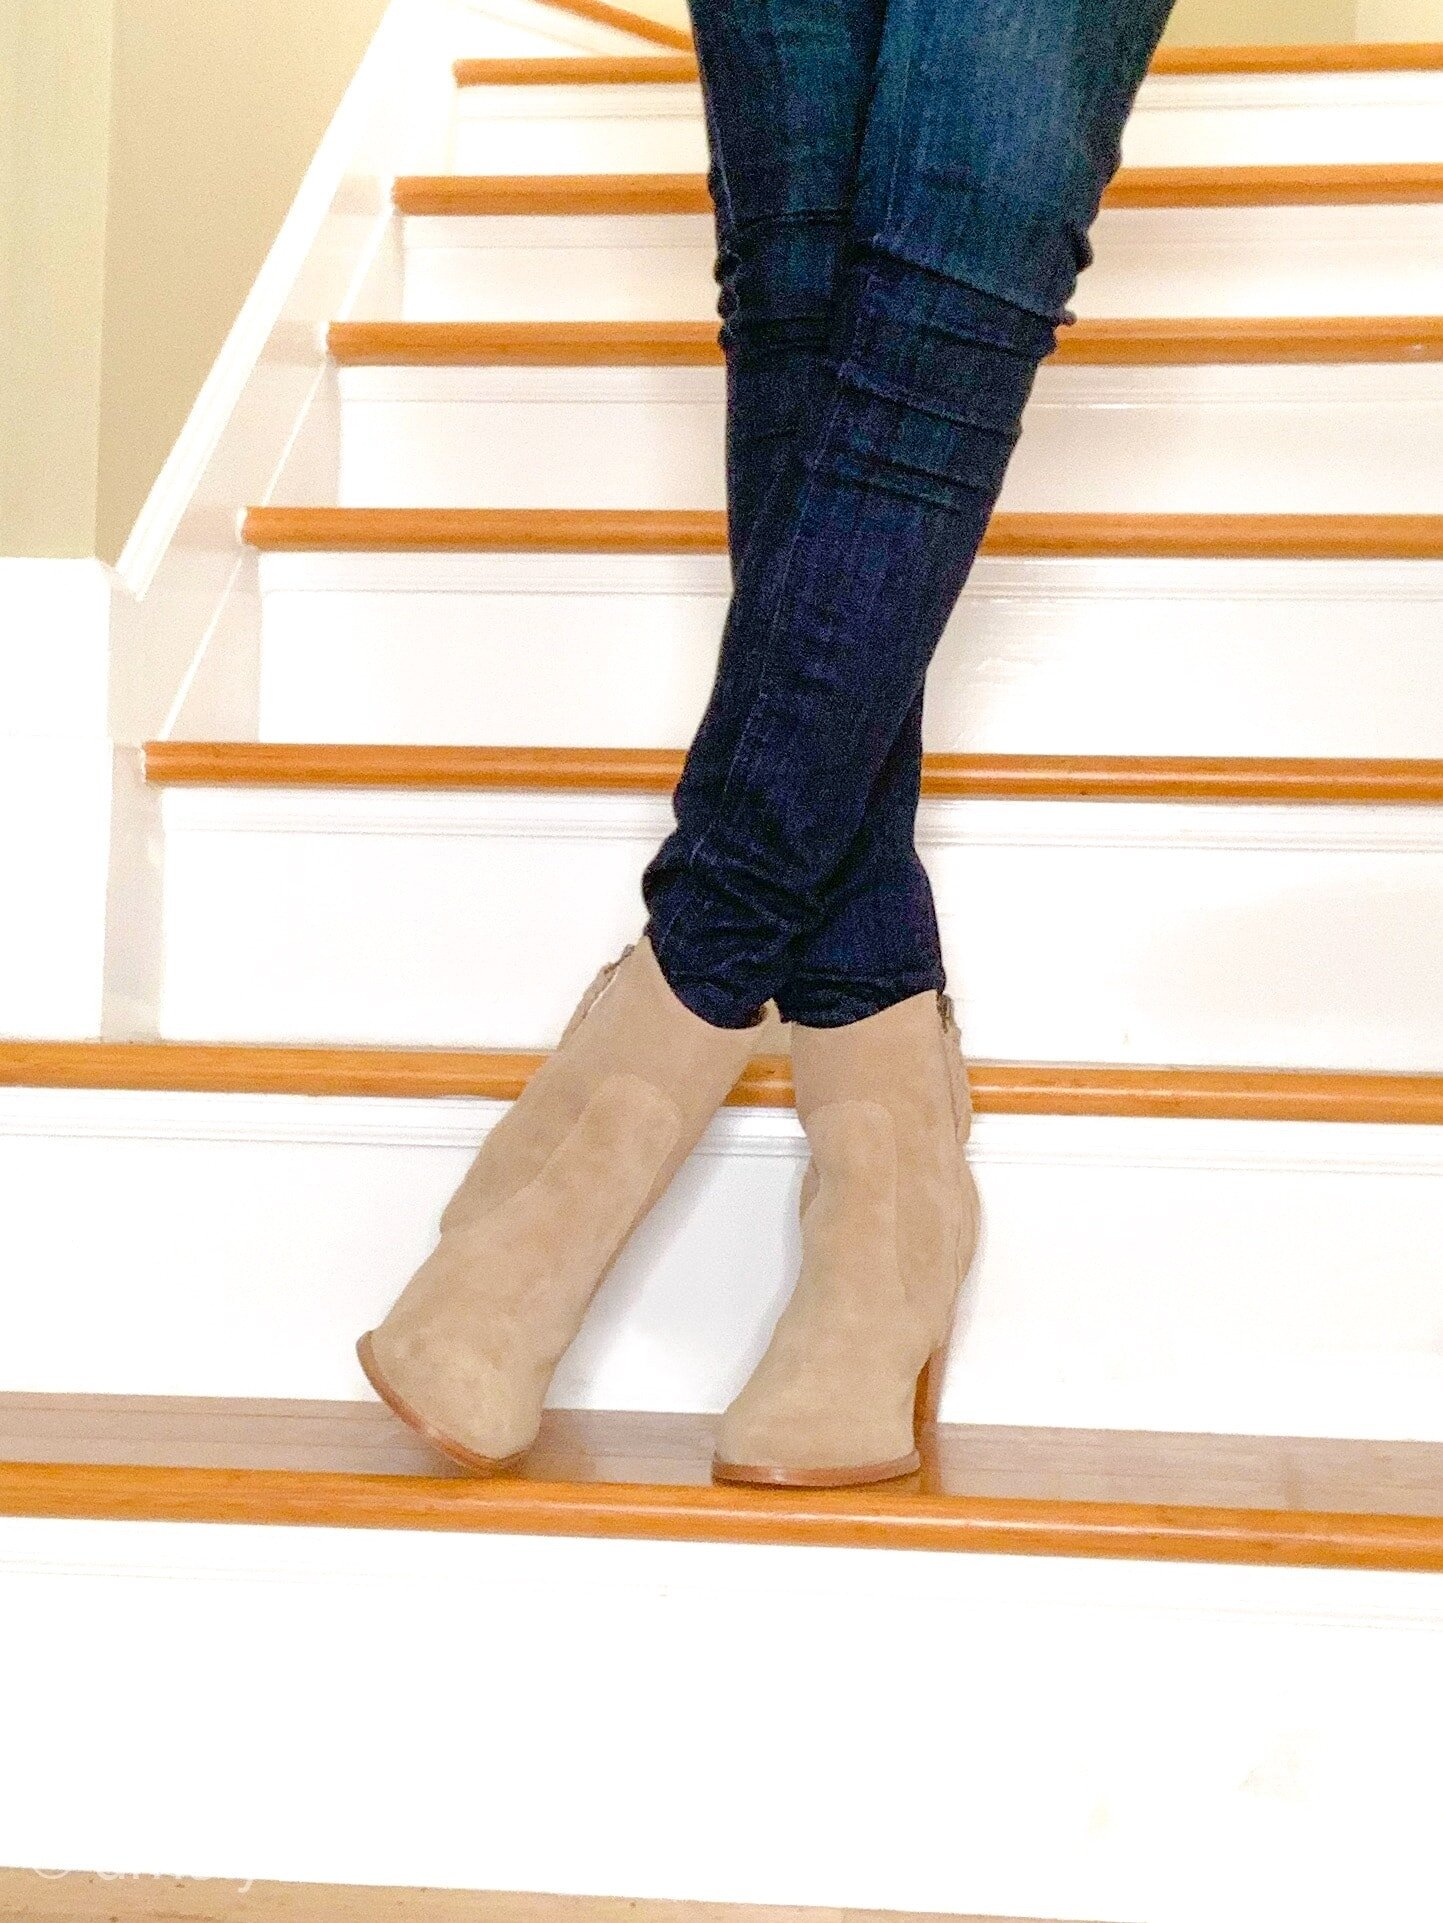 ankle boots and skinny jeans 2-min.jpg